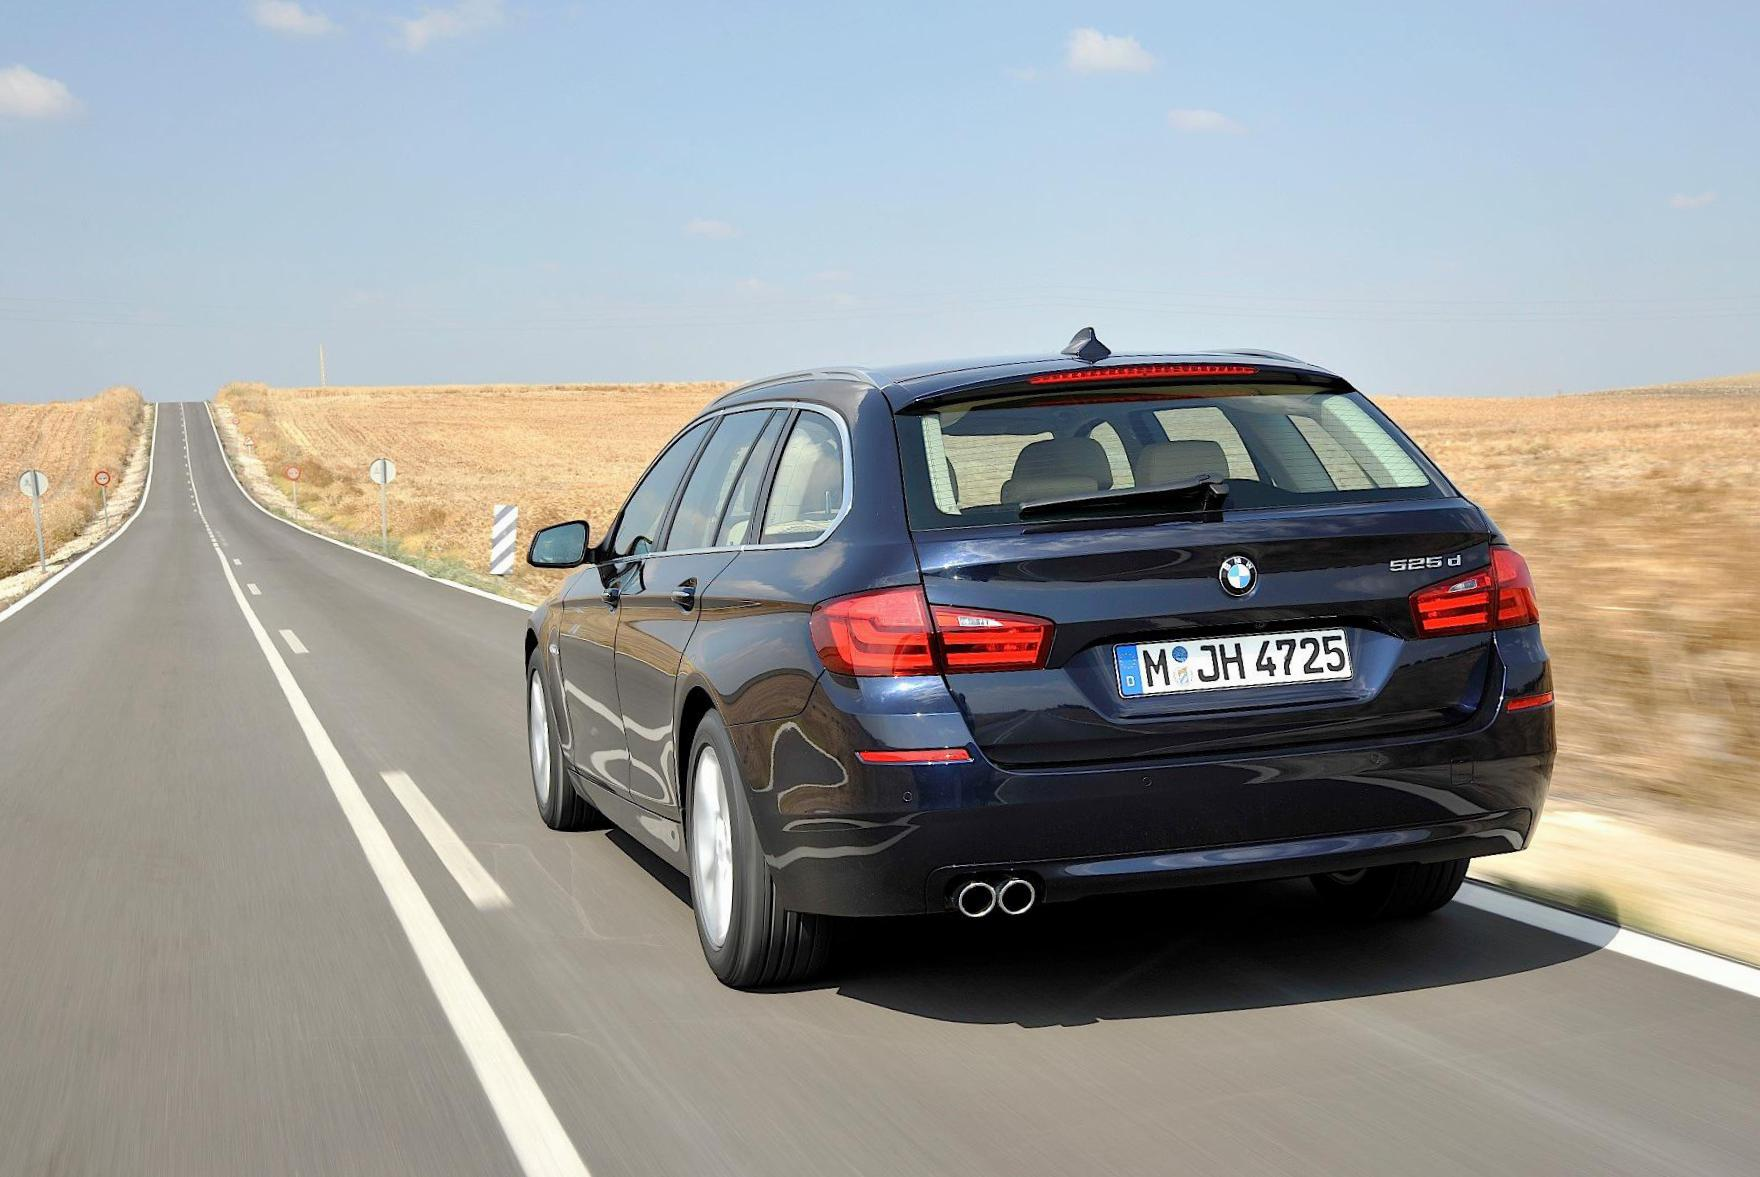 BMW 5 Series Touring (F11) approved hatchback